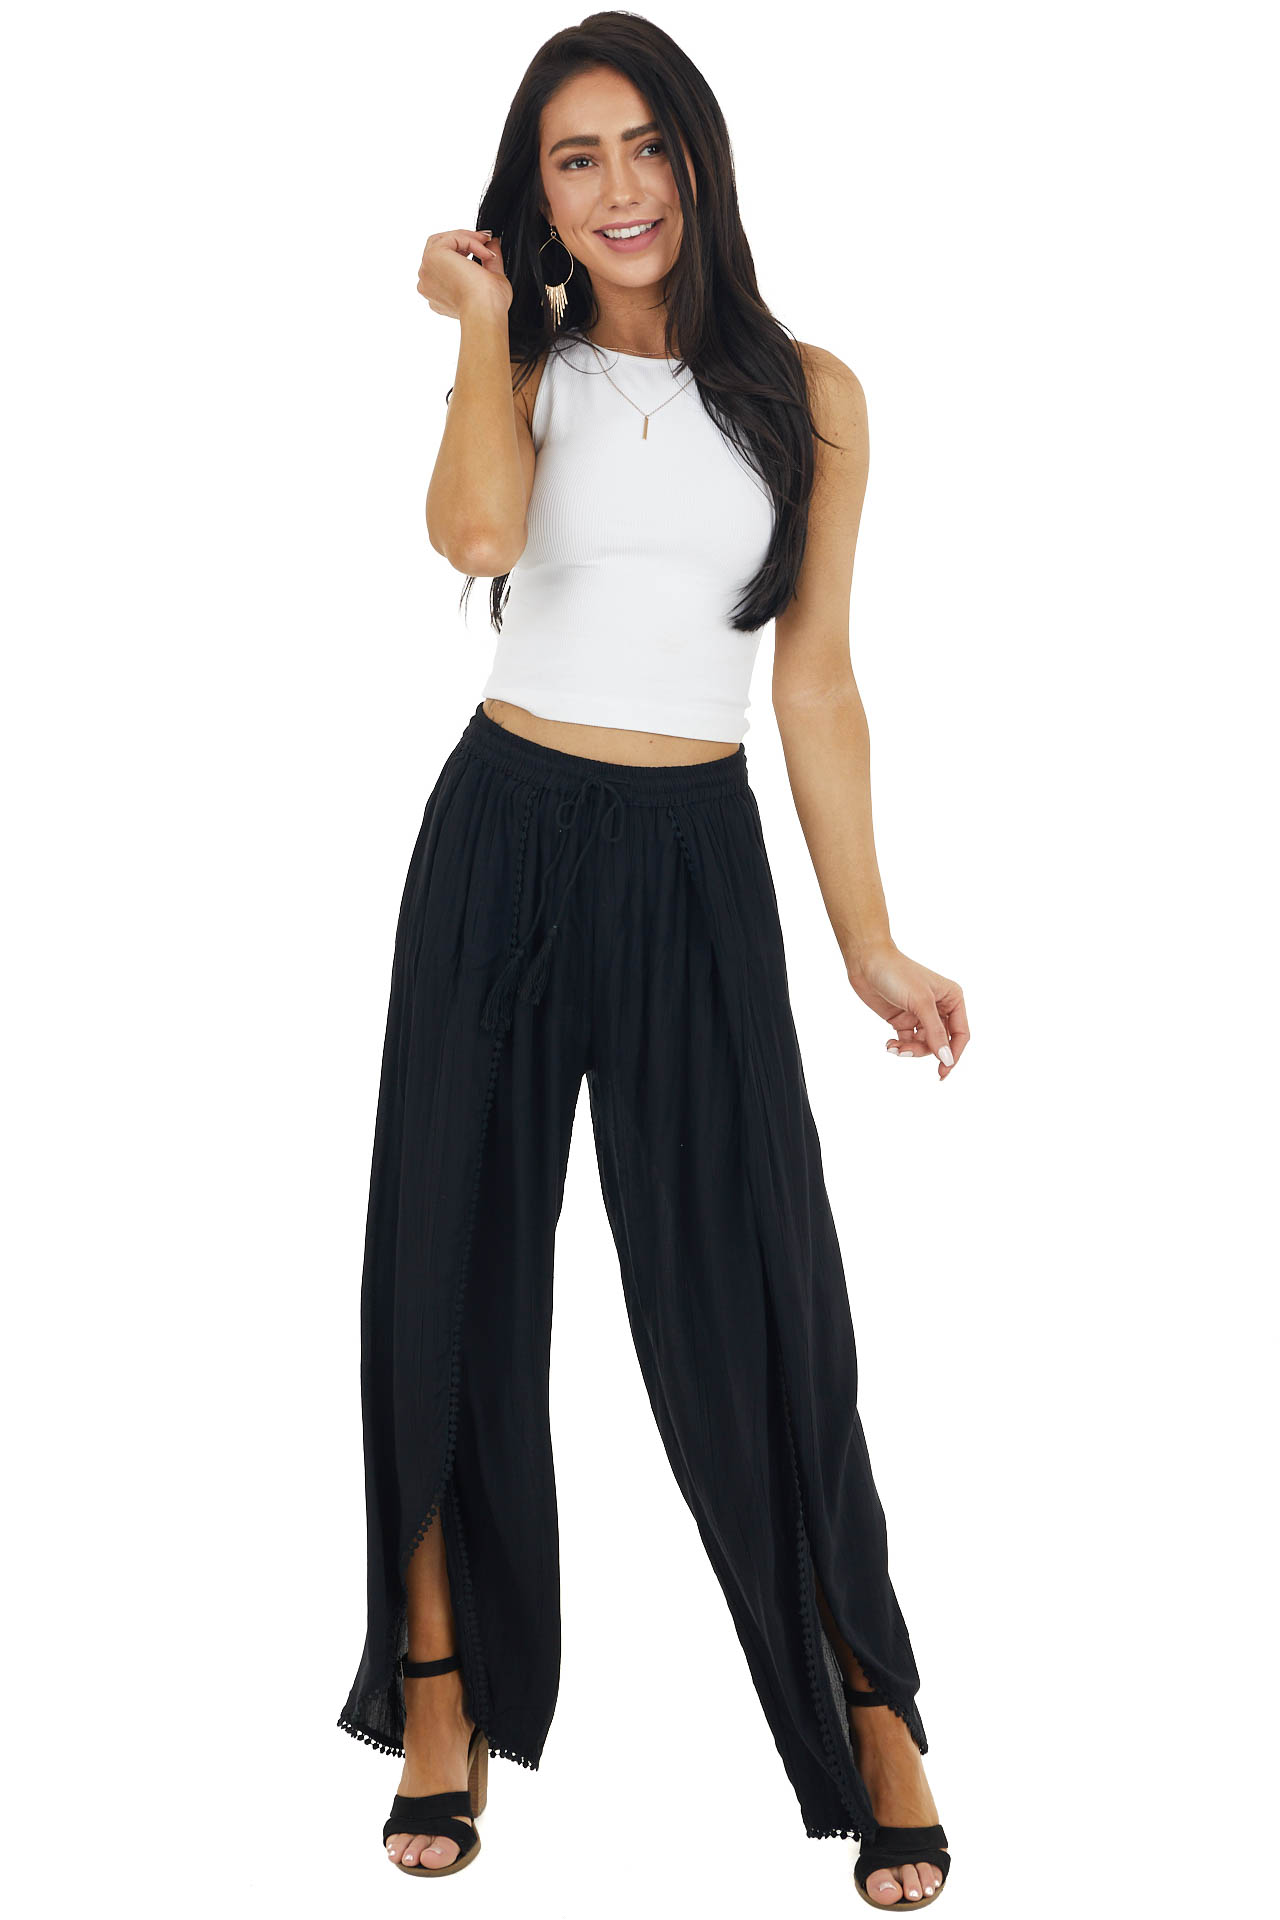 Black Open Leg Wrap Pants with Tassel and Lace Details